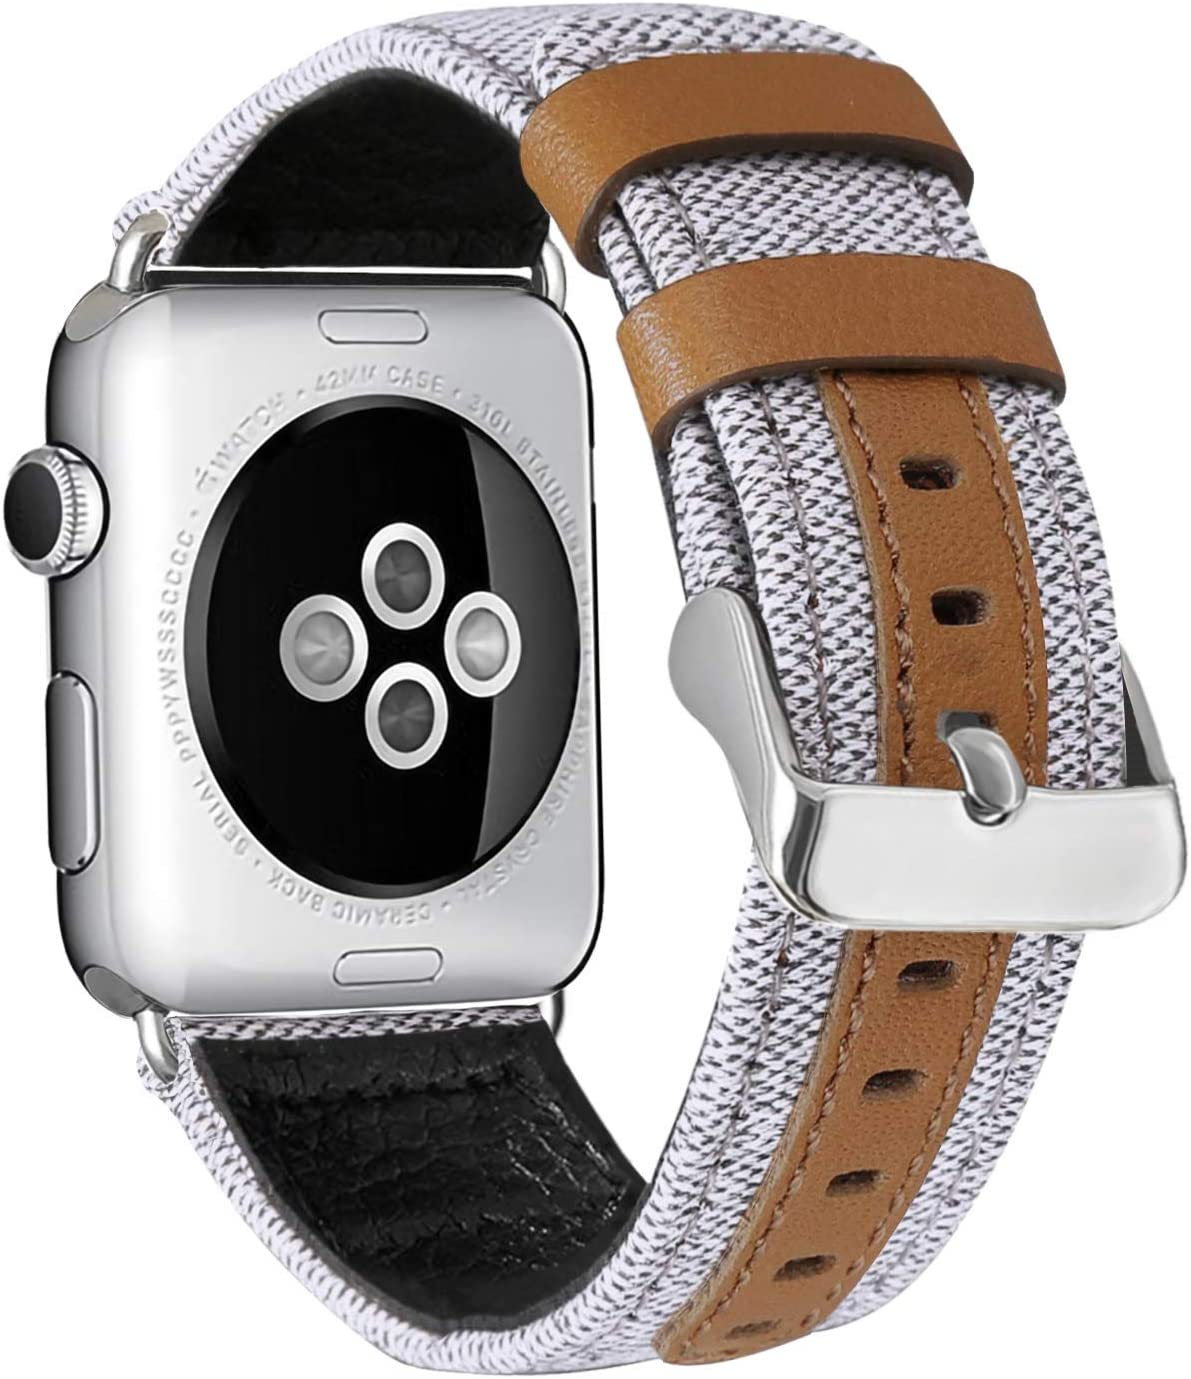 ALADRS Canvas Watch Straps Compatible with Fabric Apple Watch Band 44mm 42mm, Leather Wristbands Replacement for iWatch Series 6 5 4, SE (44mm) Series 3 2 1 (42mm), Creamy-White